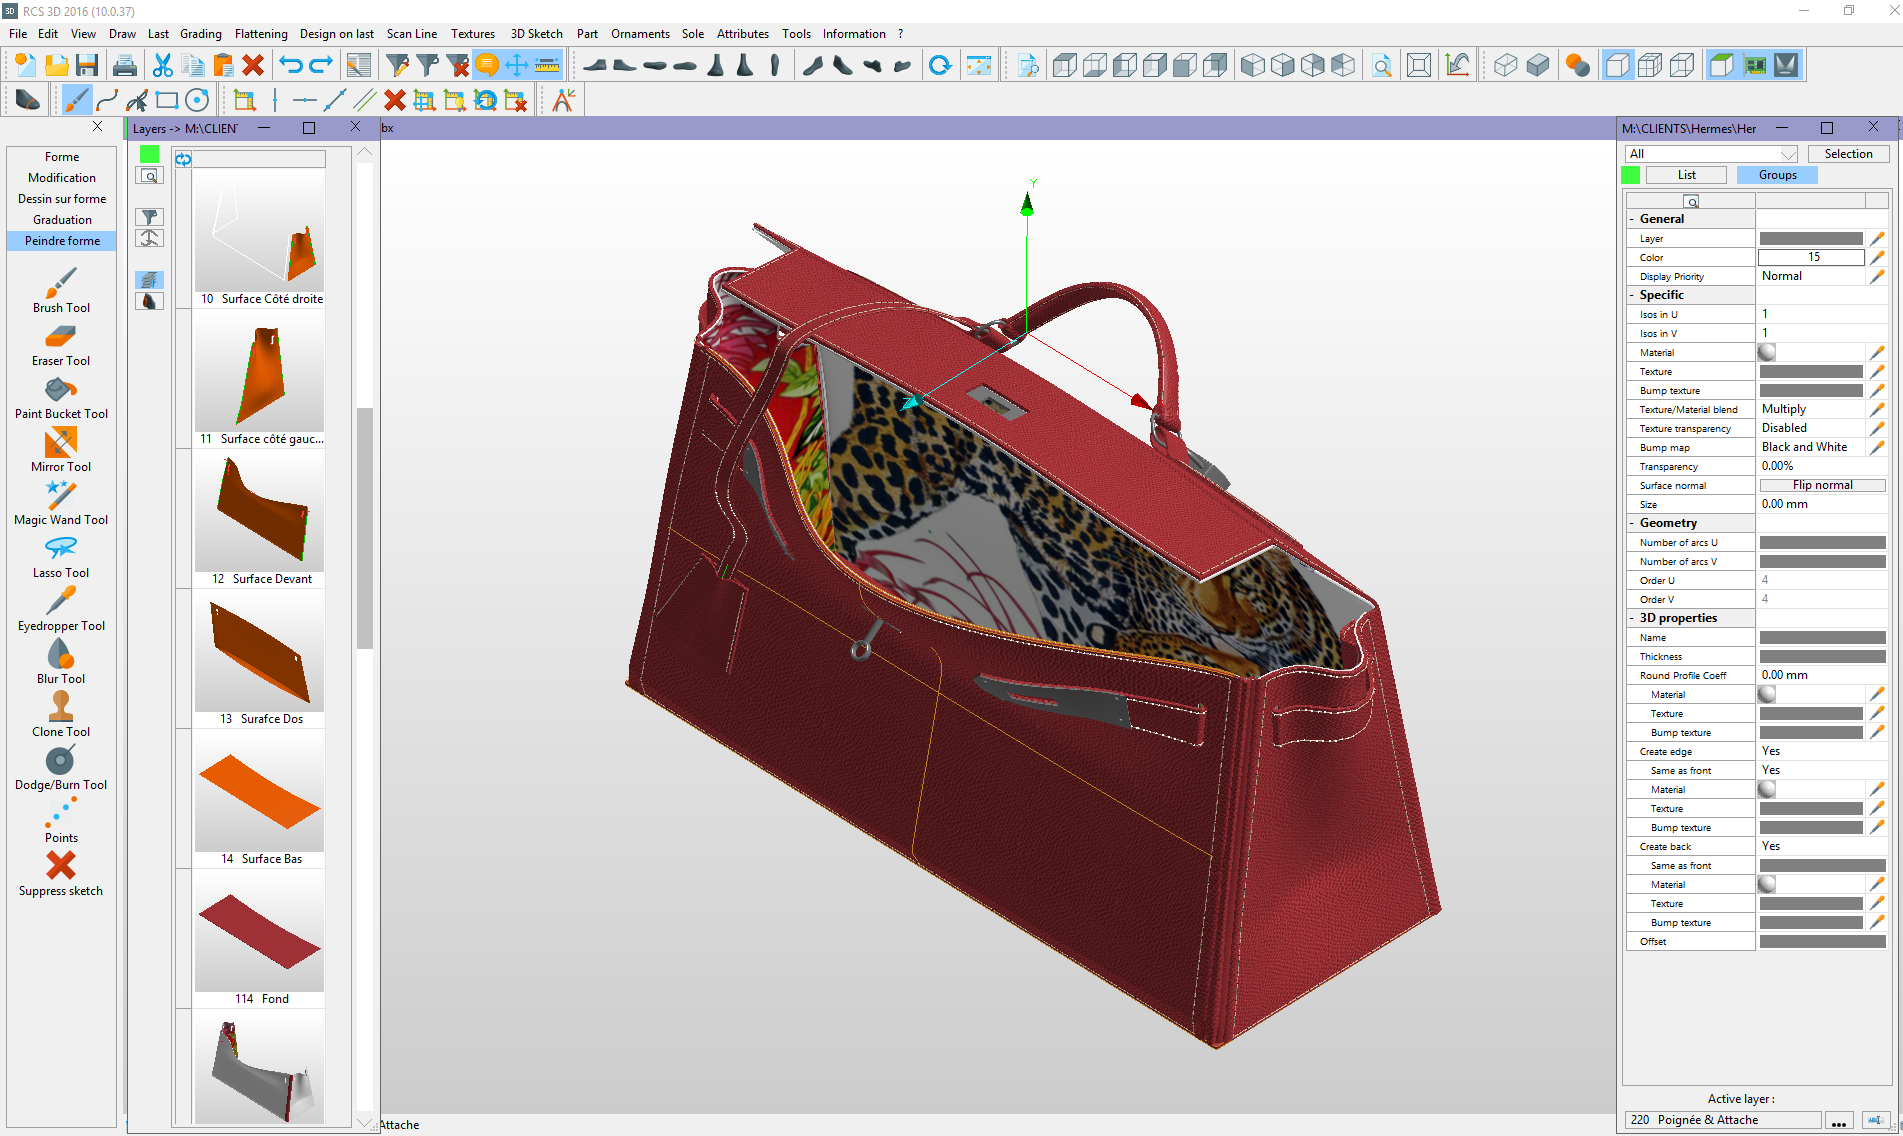 STRATEGIES - Romans CAD 3D Footwear Design